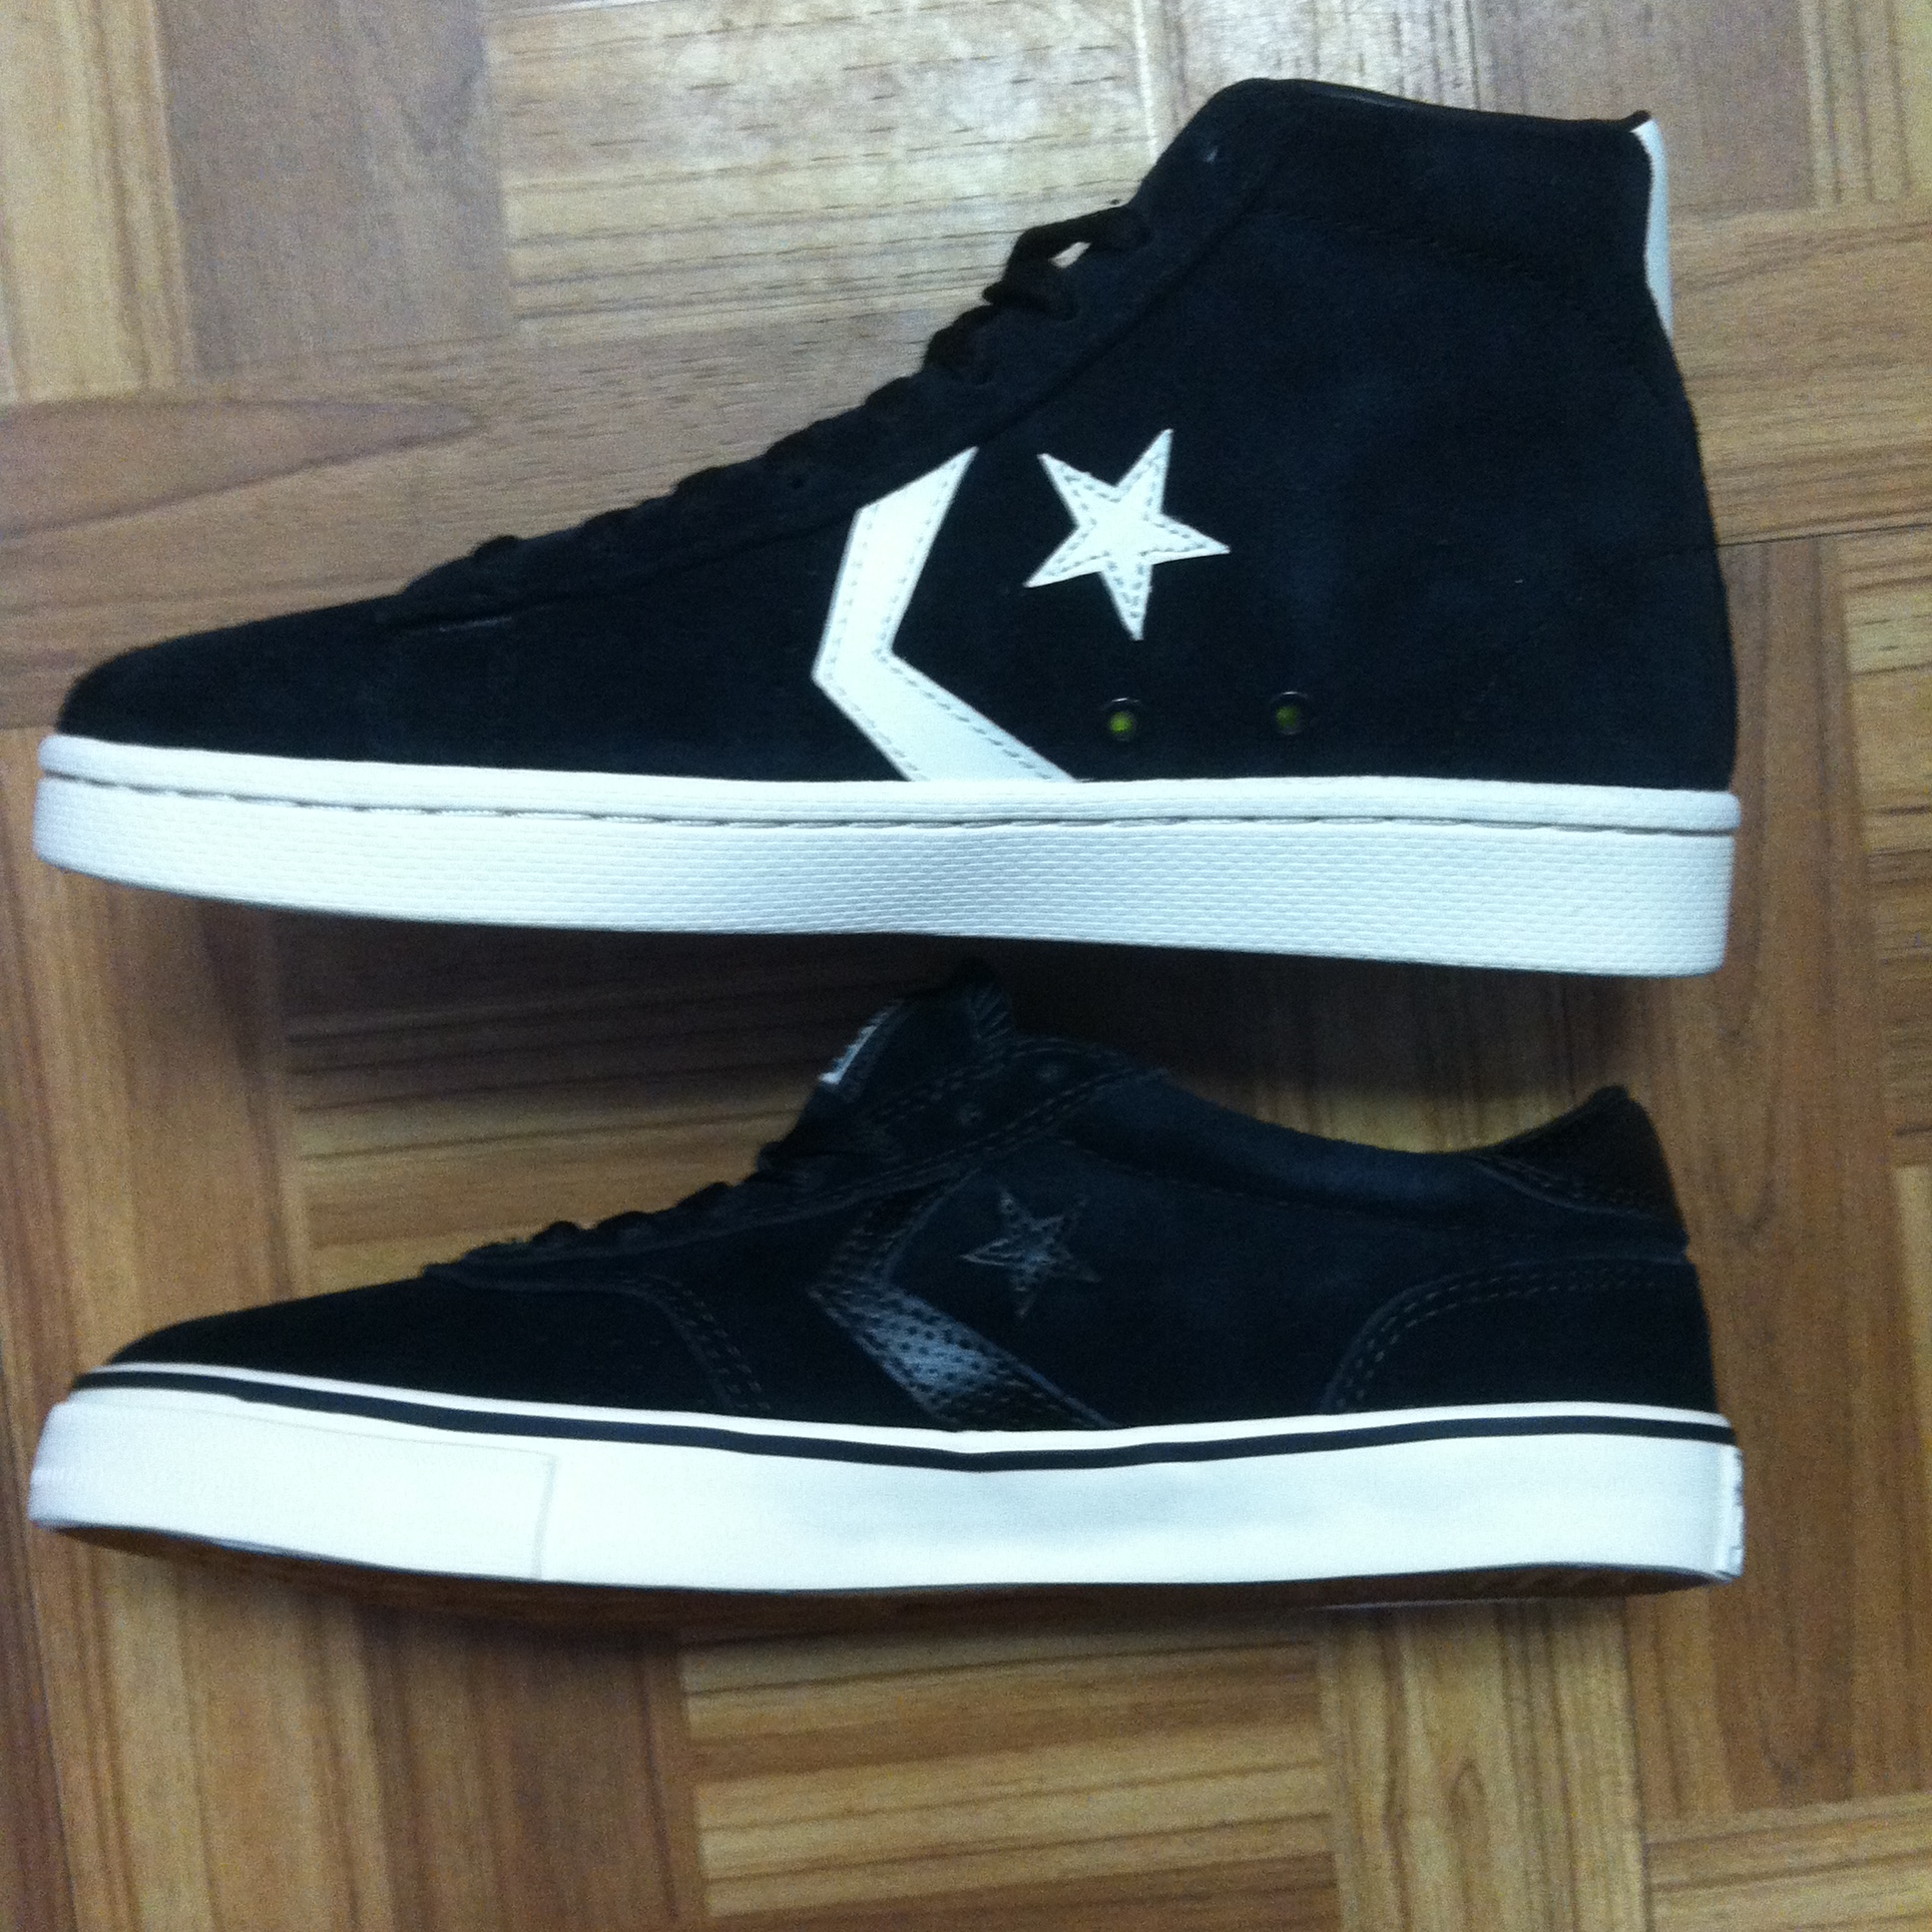 8f80e709a9d7 New Shoes From Cons Converse. Pro Leather Mid Pro In Black White ...